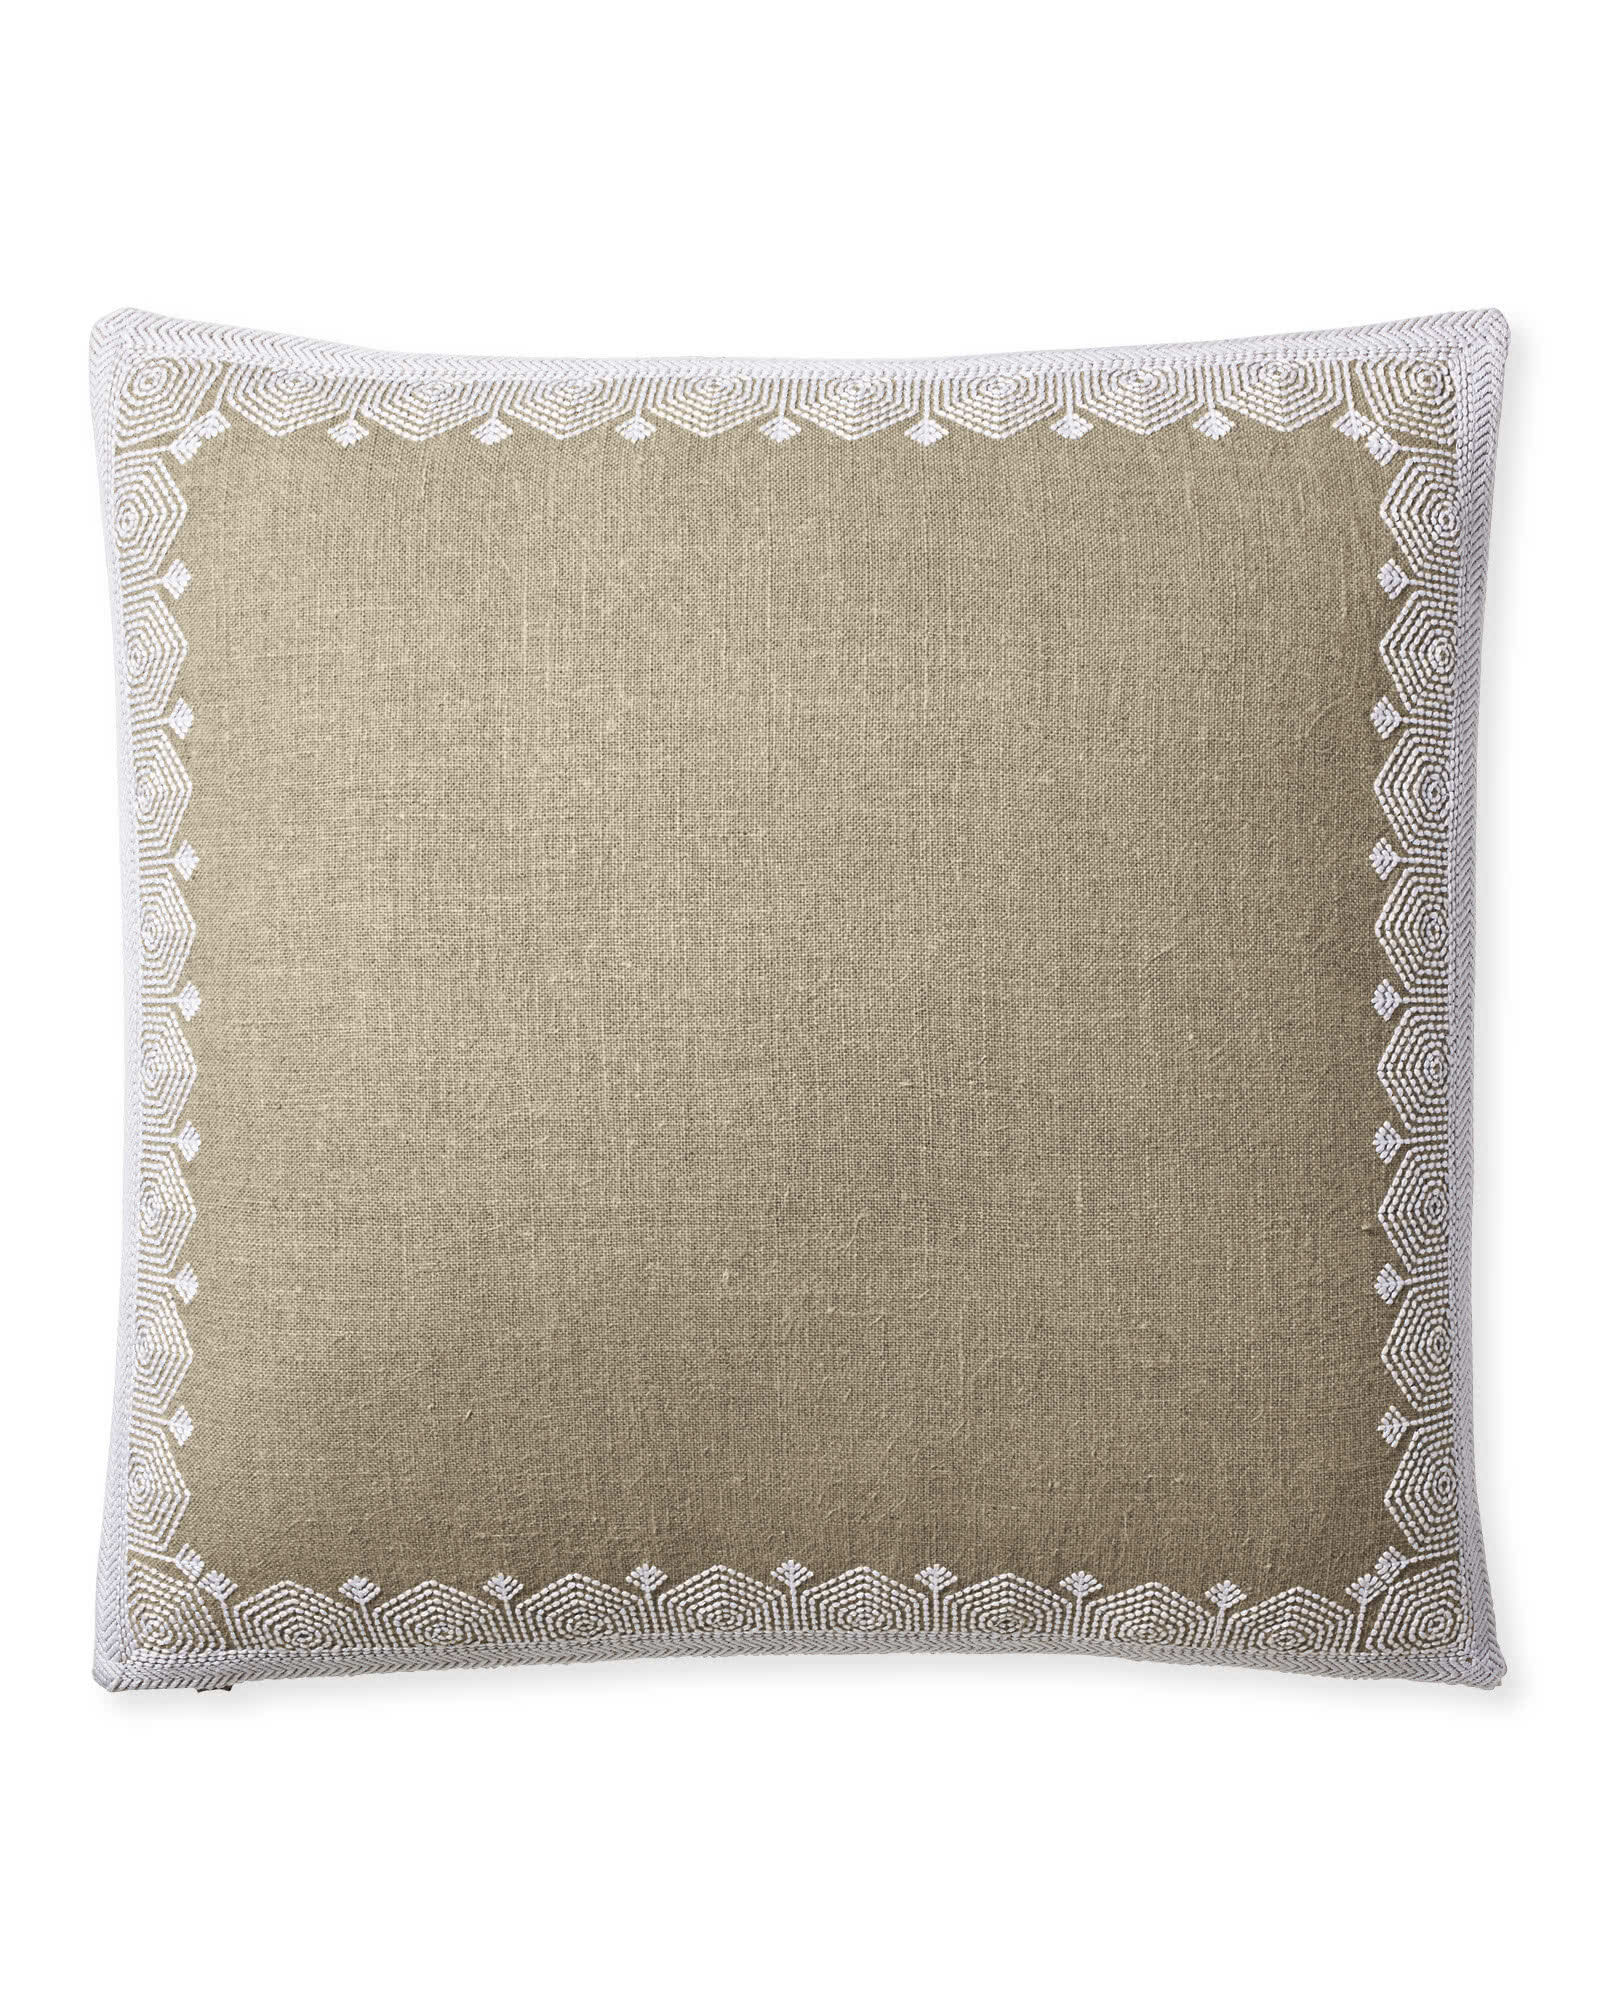 Olympia Pillow Cover, Natural